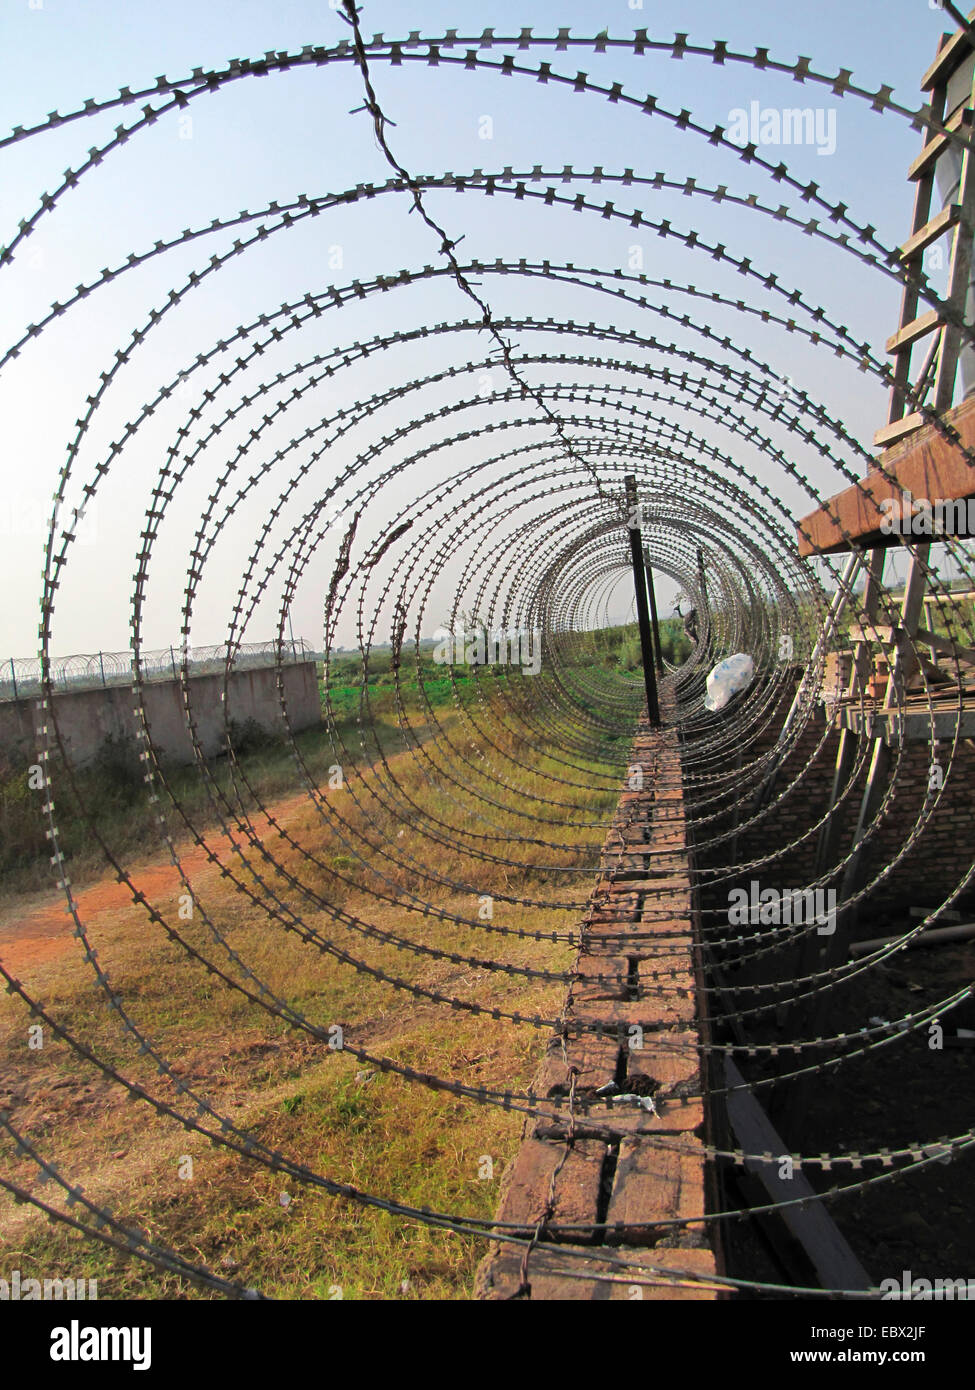 barb wire on a wall securing a compound, Burundi, Bujumbura marie, Cartier industriel, Bujumbura Stock Photo